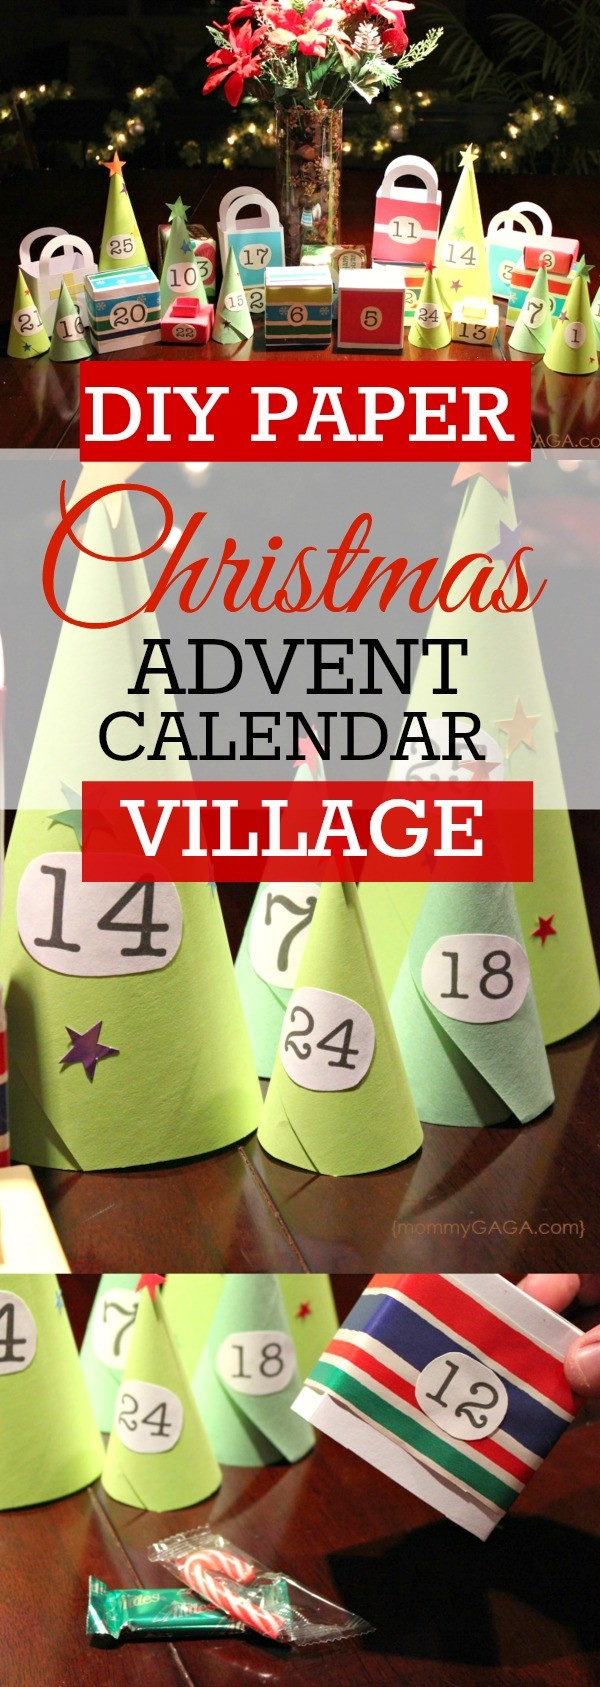 DIY paper Christmas advent calendar village - Count down to Christmas day with this fun homemade advent calendar, lift each house and tree and find a treat inside!